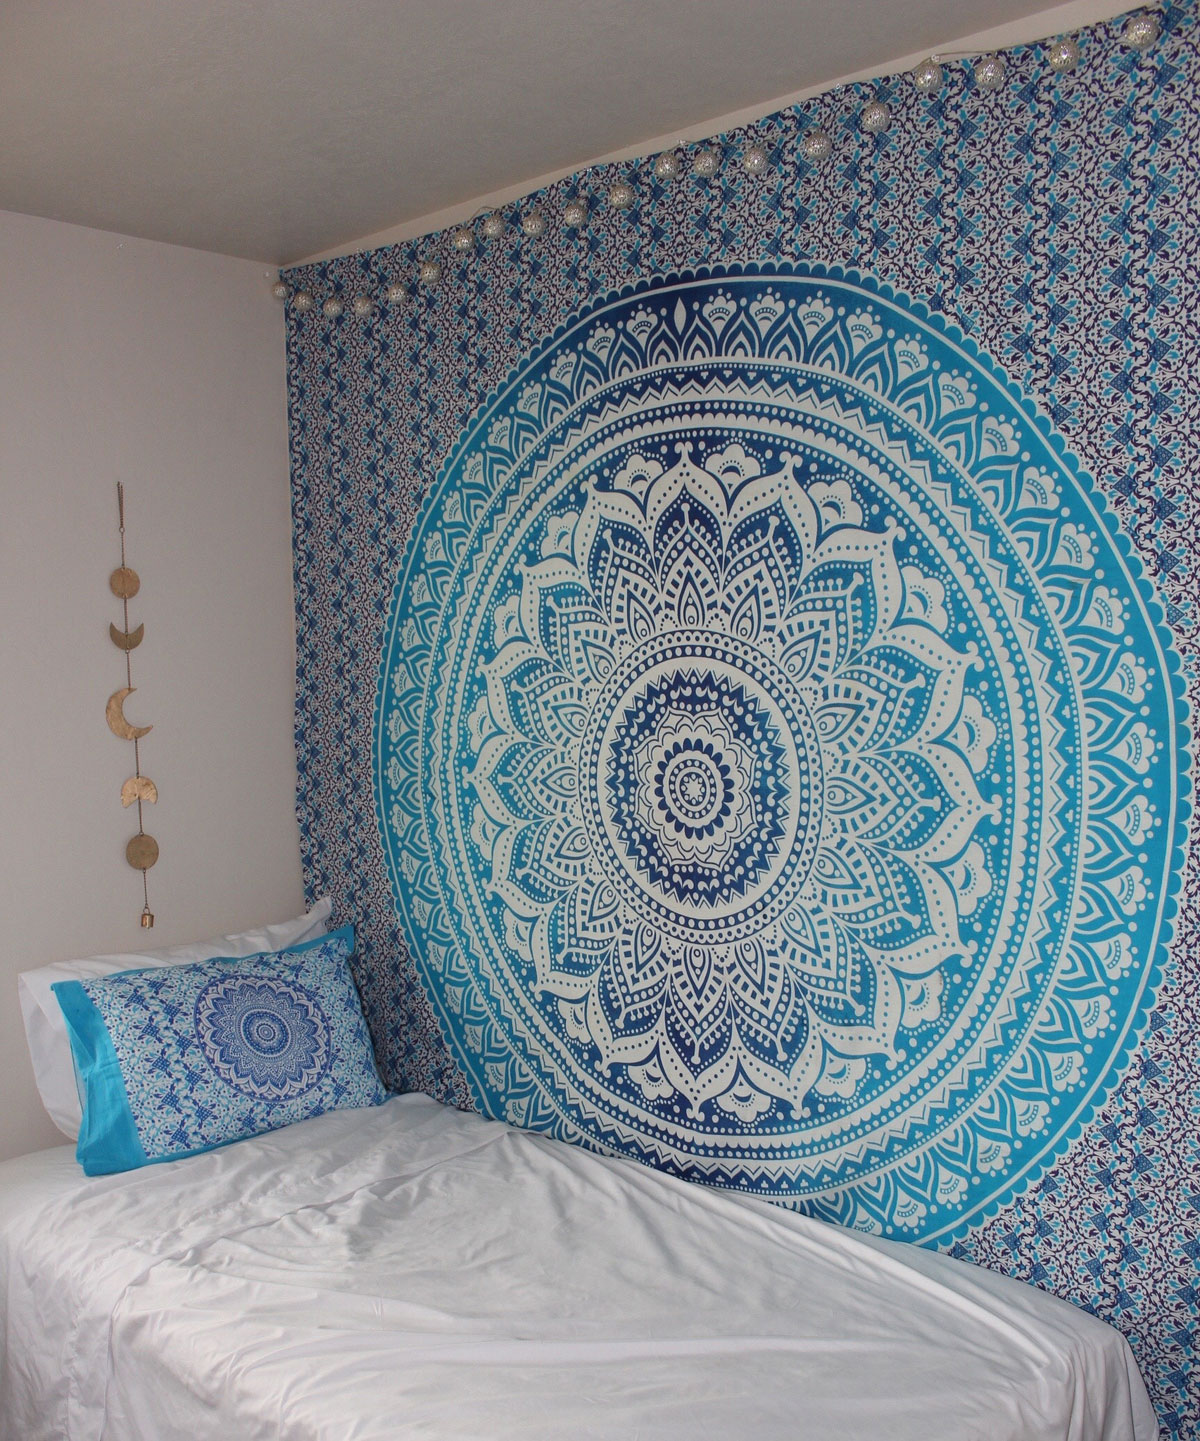 Home Decor Wall Tapestry : Blue multi indian ombre mandala wall tapestry hippie